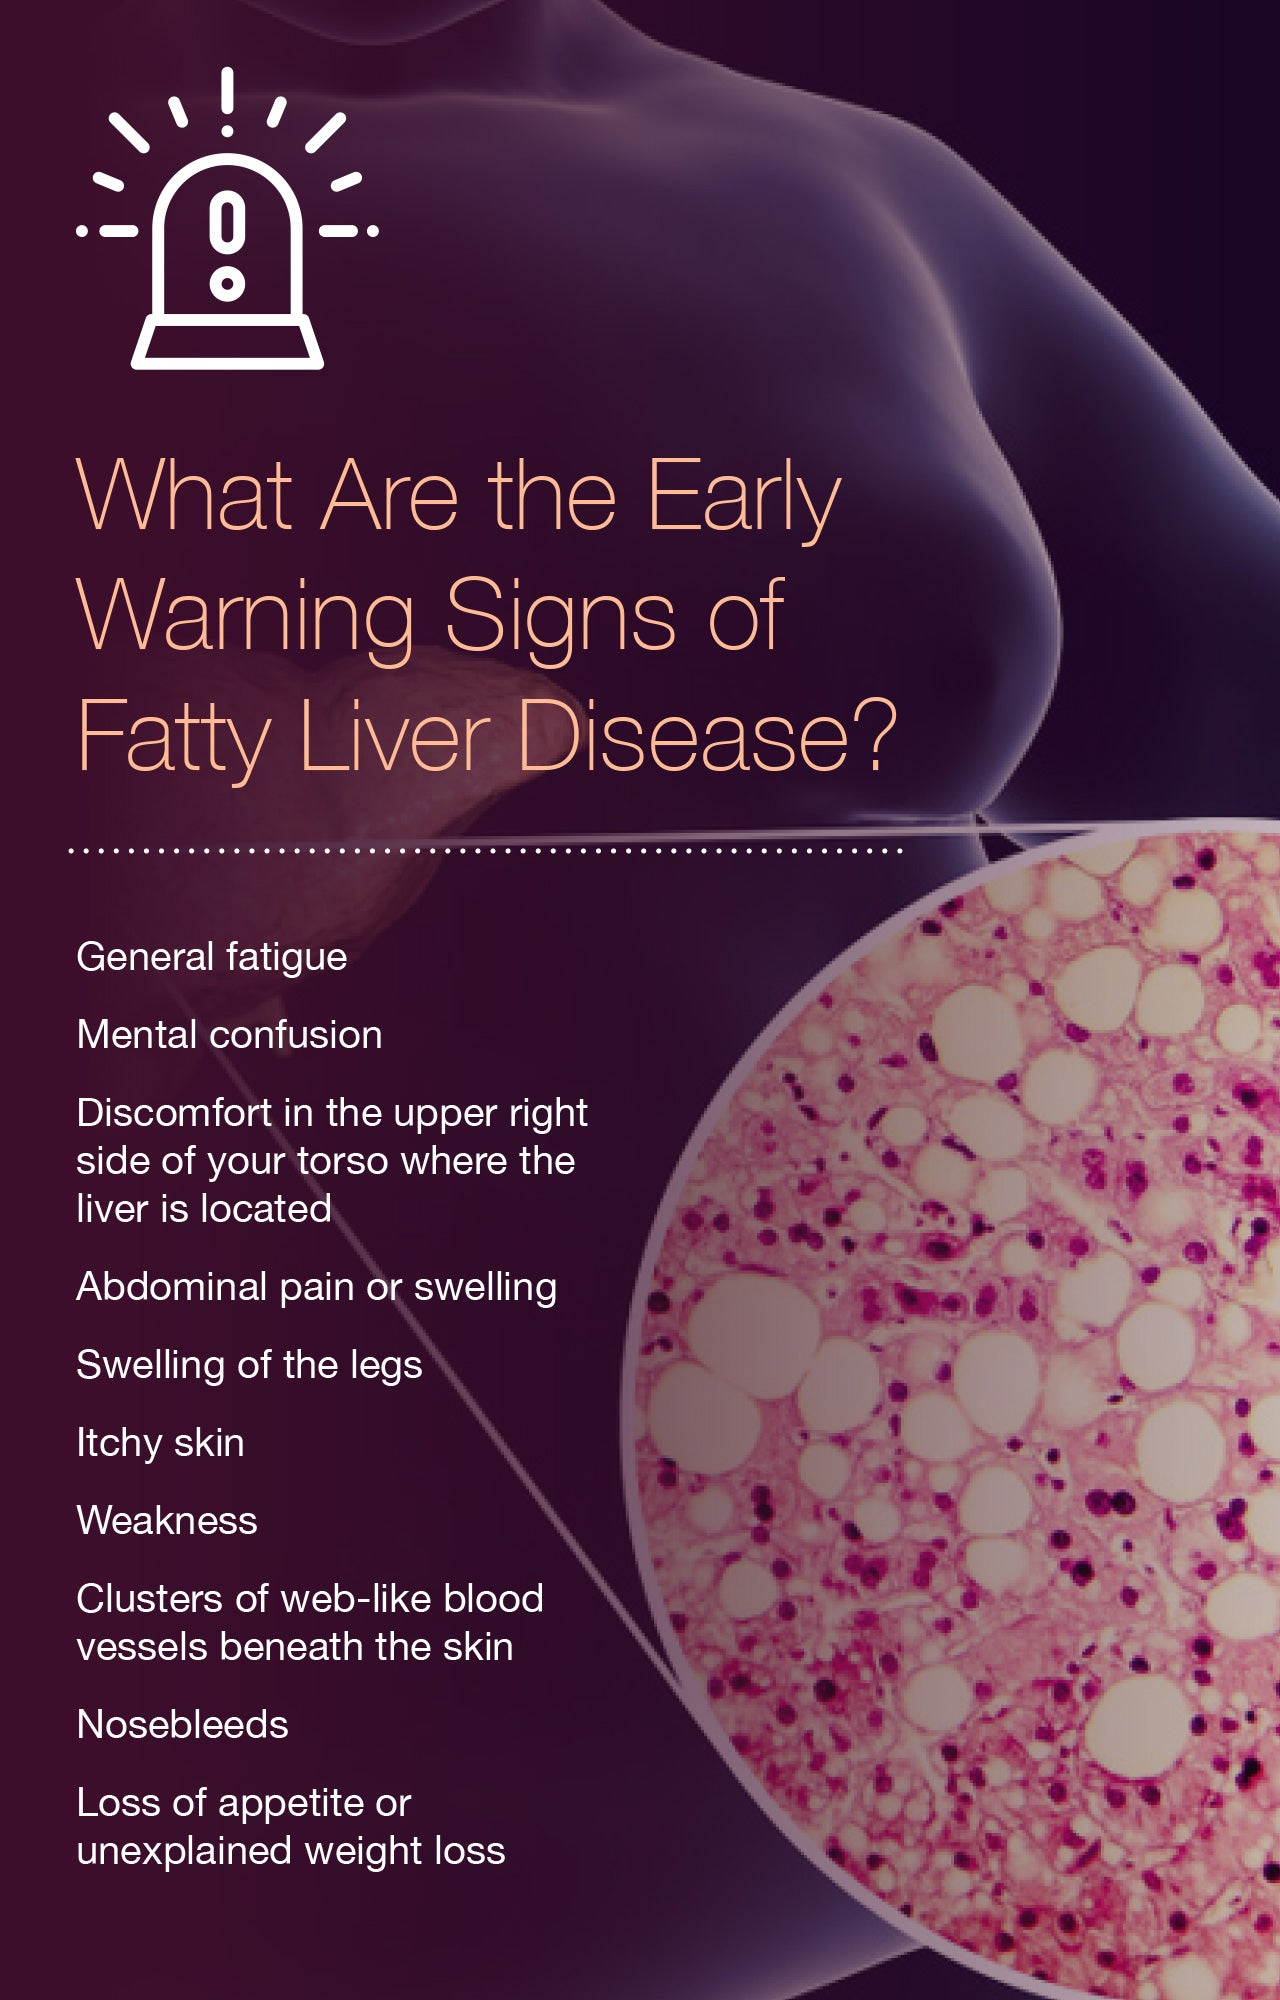 What Are the Early Warning Signs of Fatty Liver Disease?